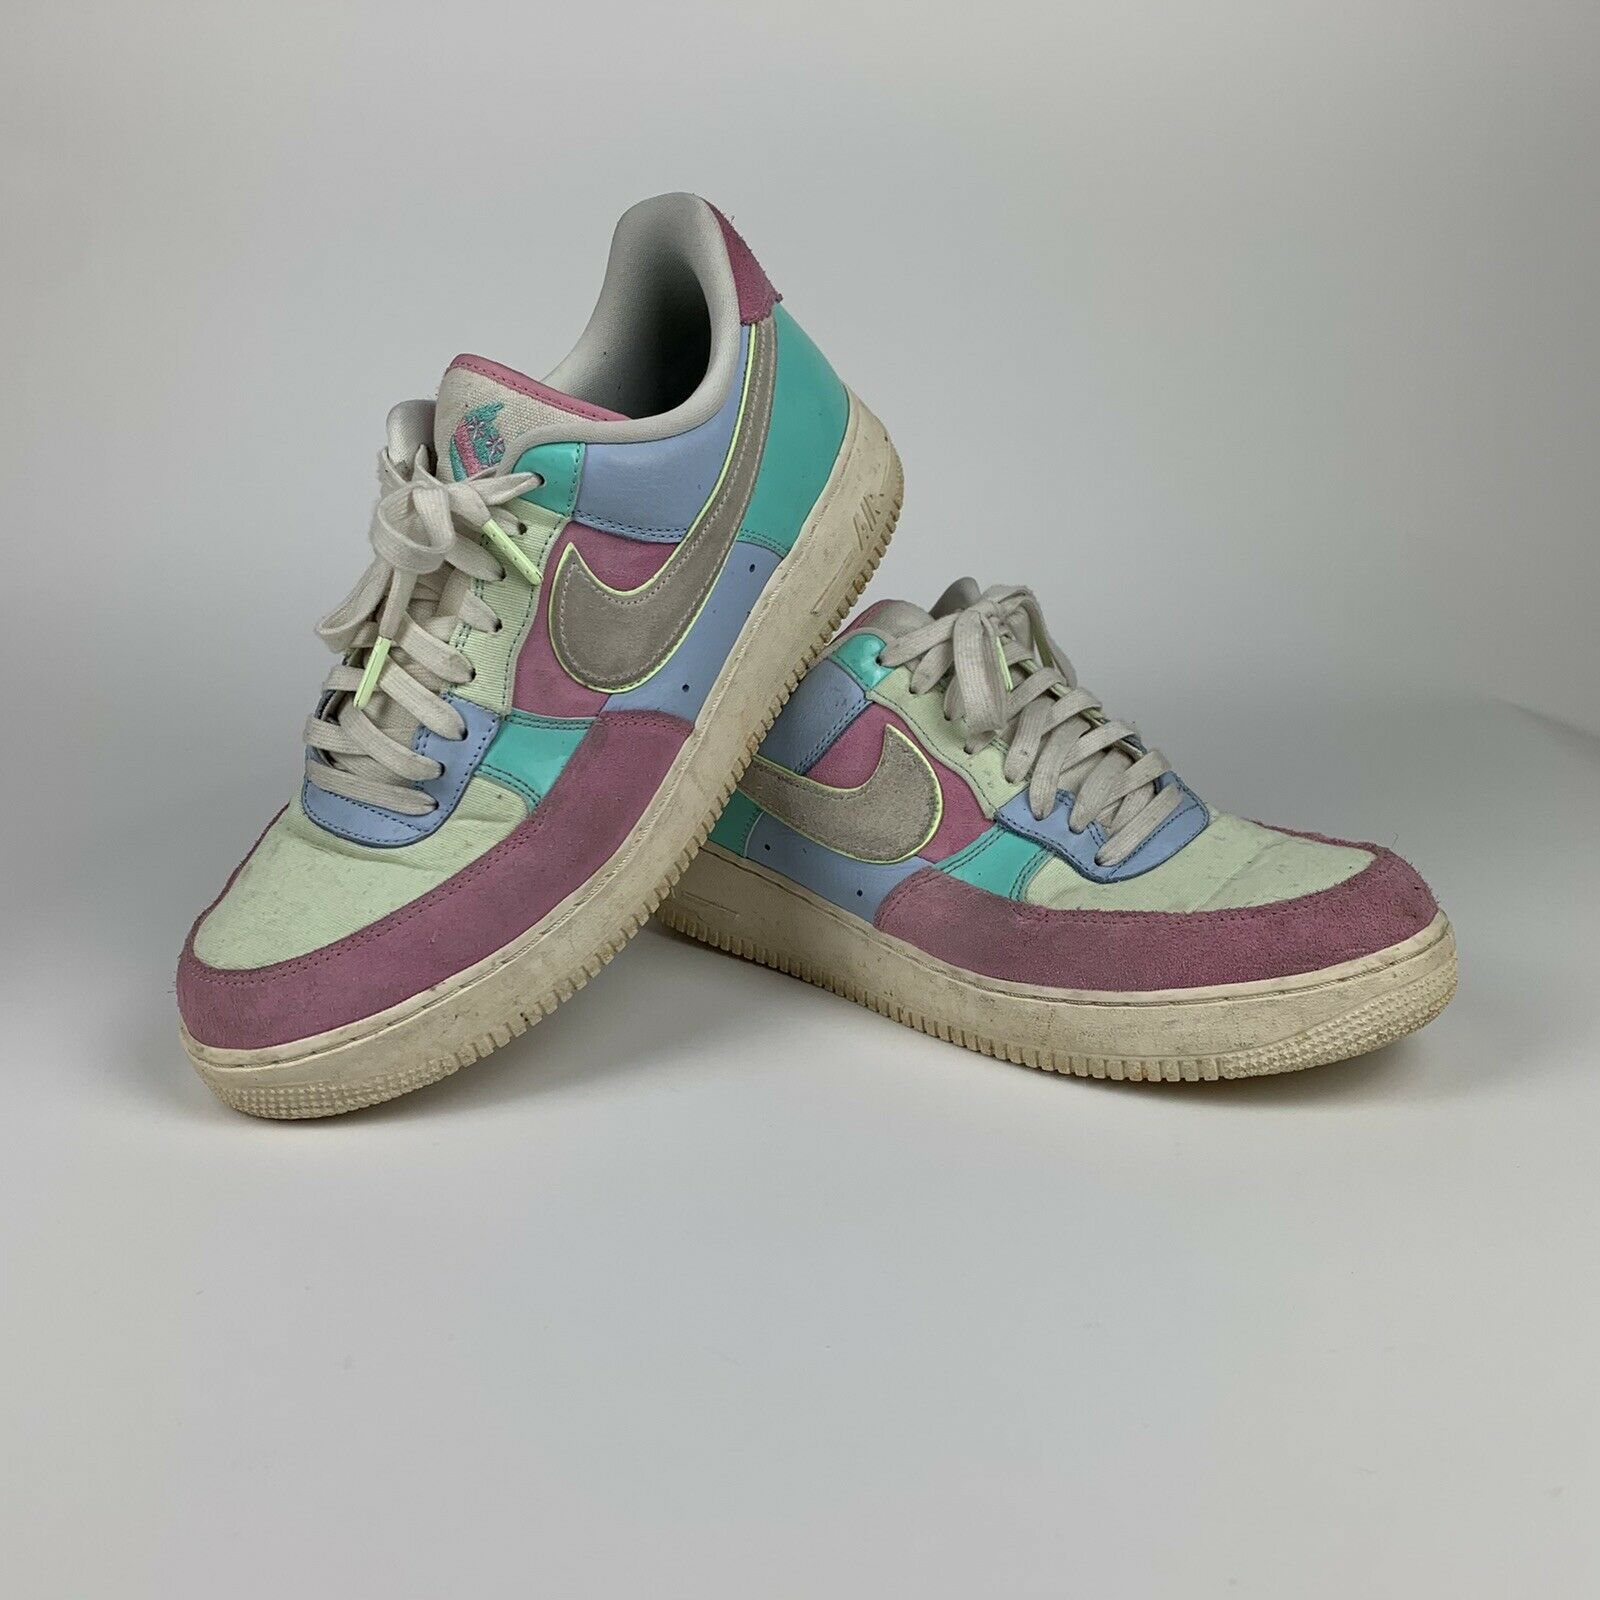 Nike Air Force 1 'Spring Patchwork